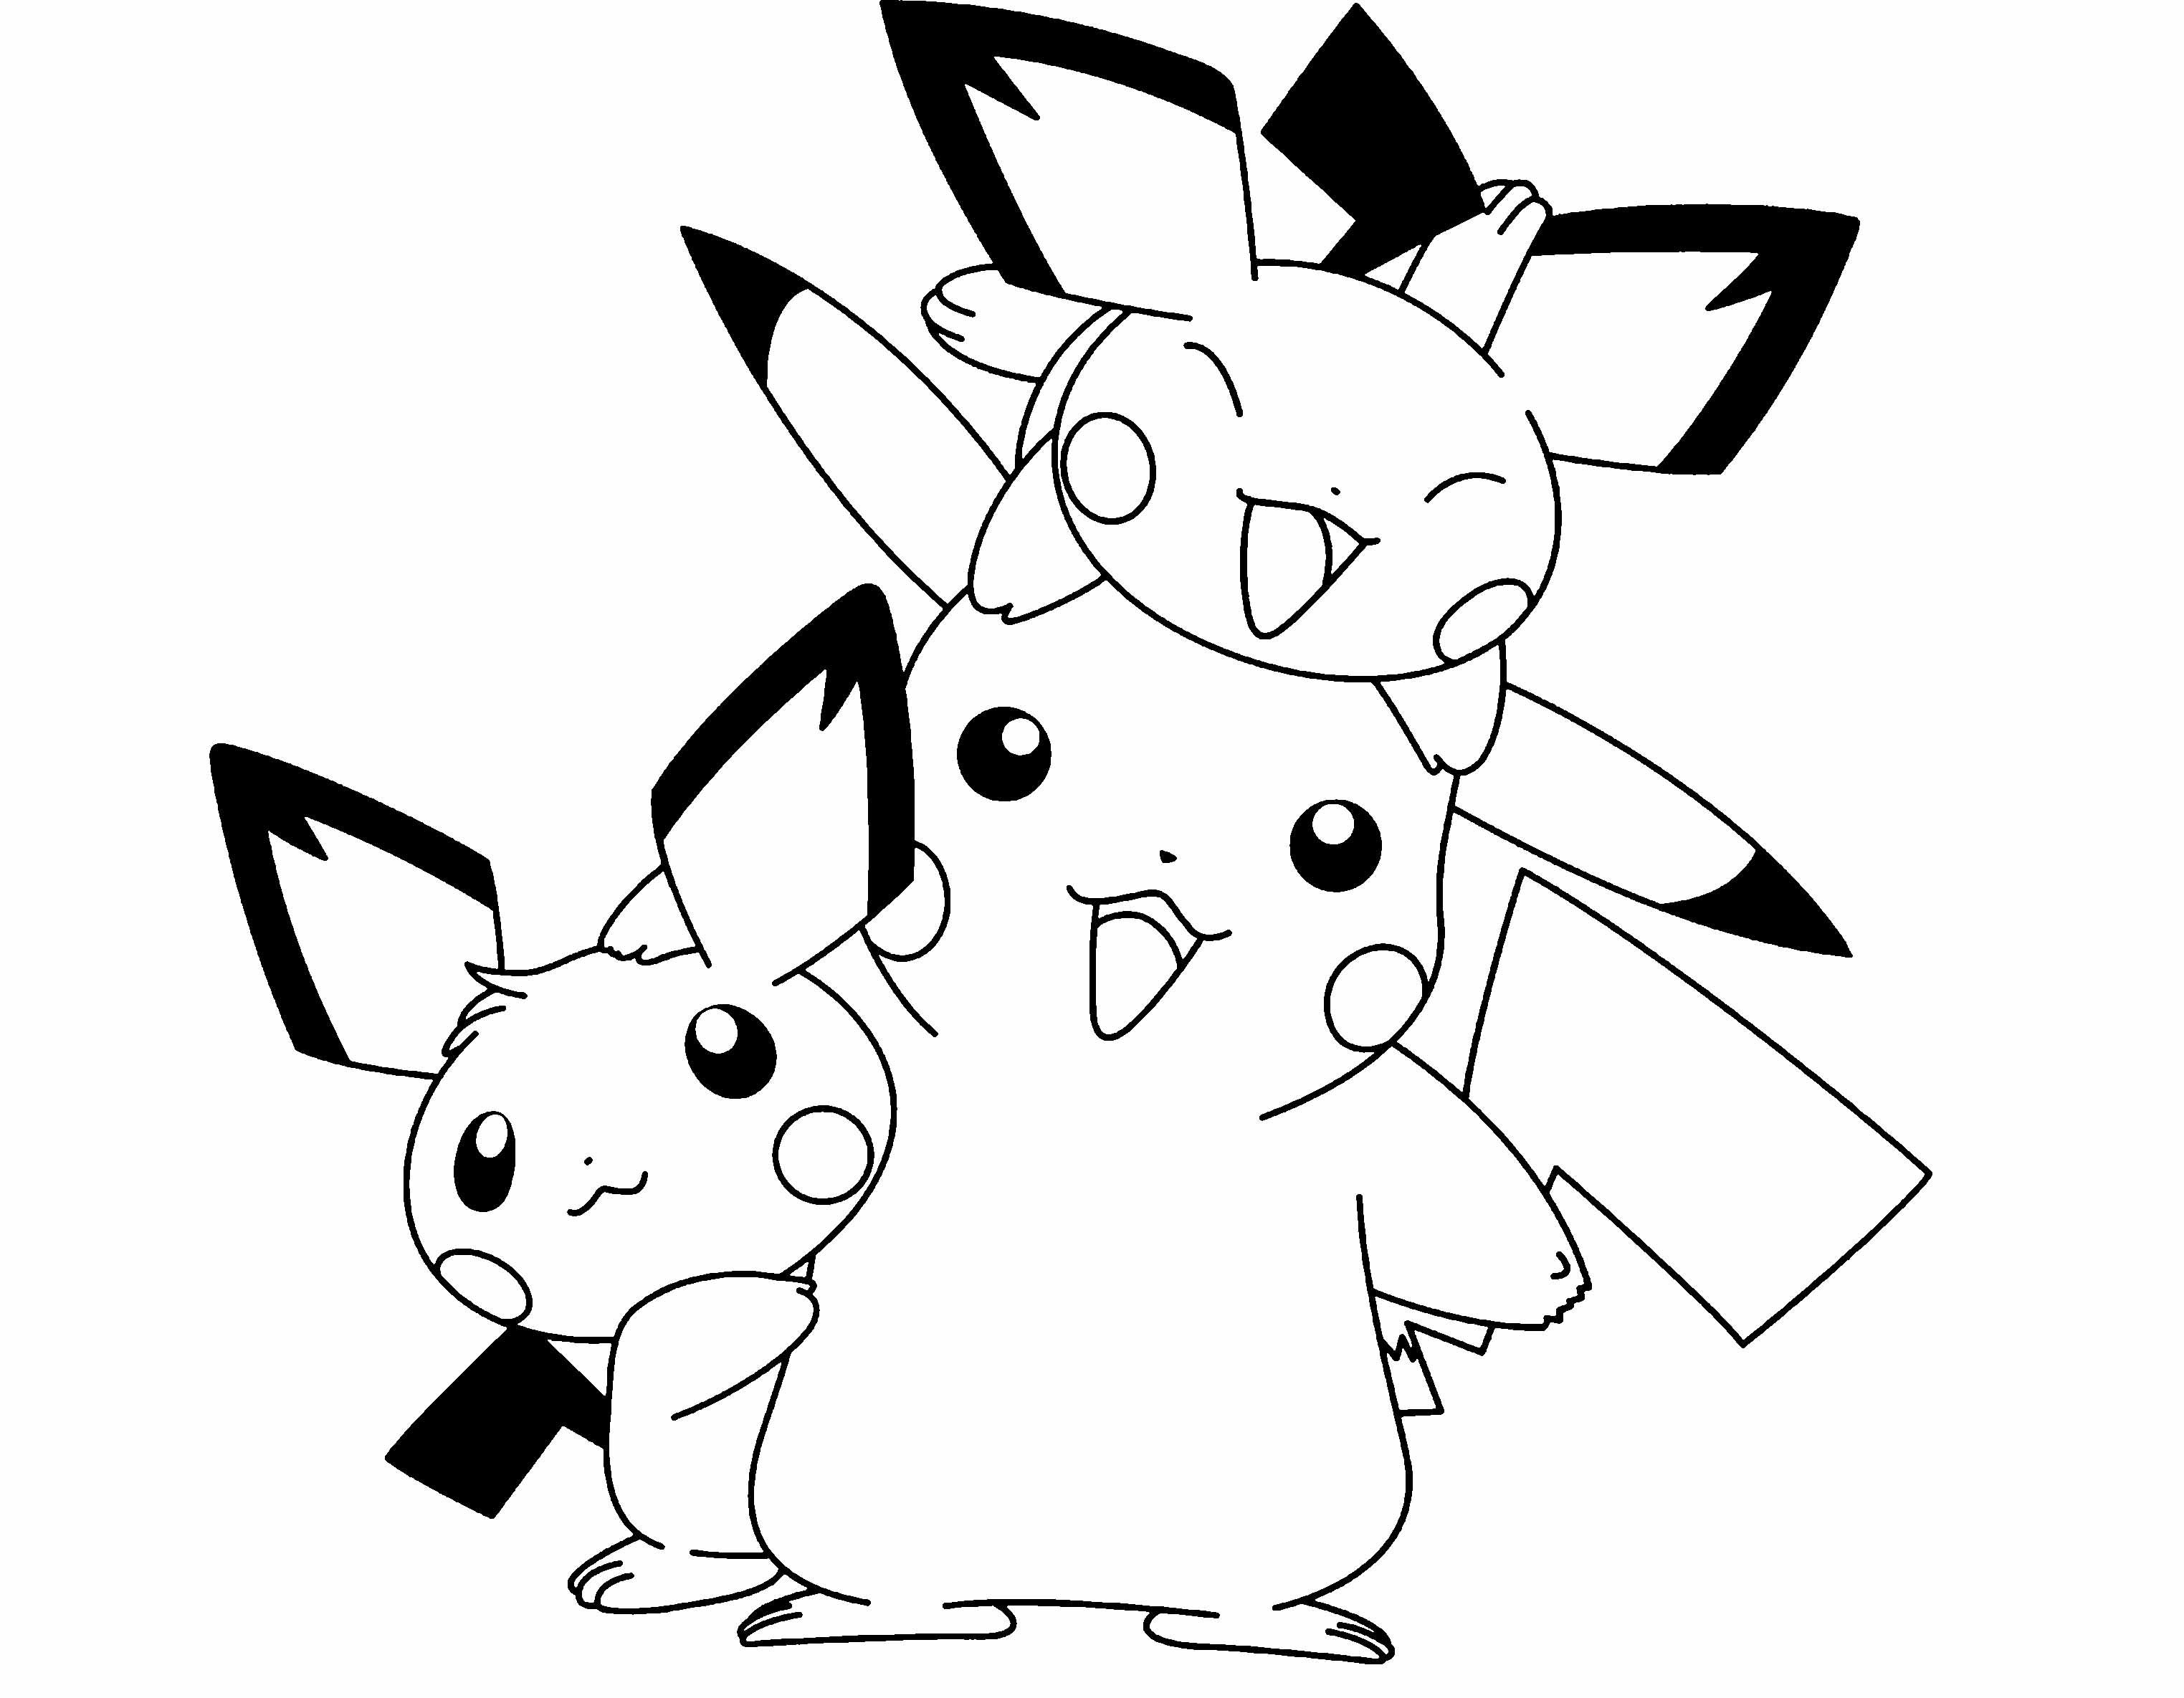 Pokemon Pikachu And Two Friends Are Cute Coloring Page à Coloriage Pikachu